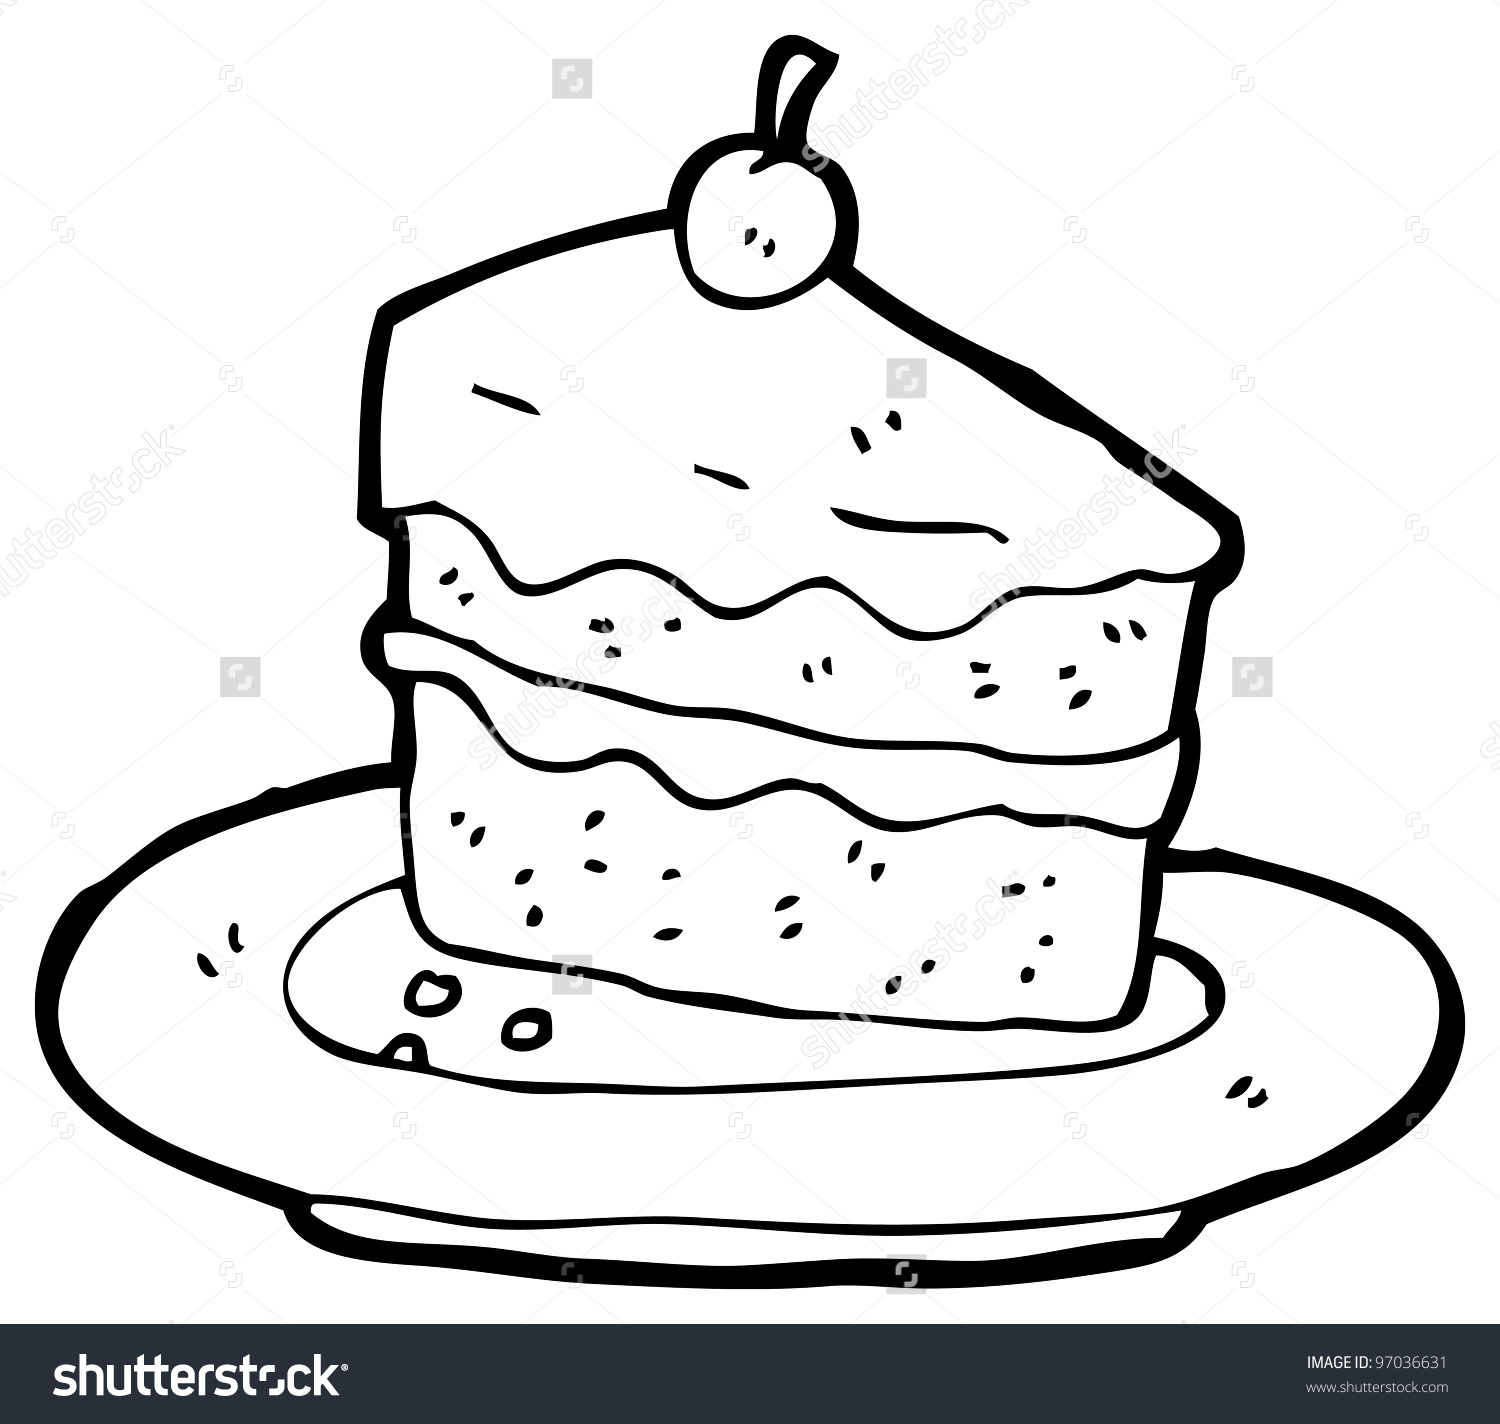 1500x1424 Slice Of Cake Drawing Cartoon Slice Cake Stock Illustration